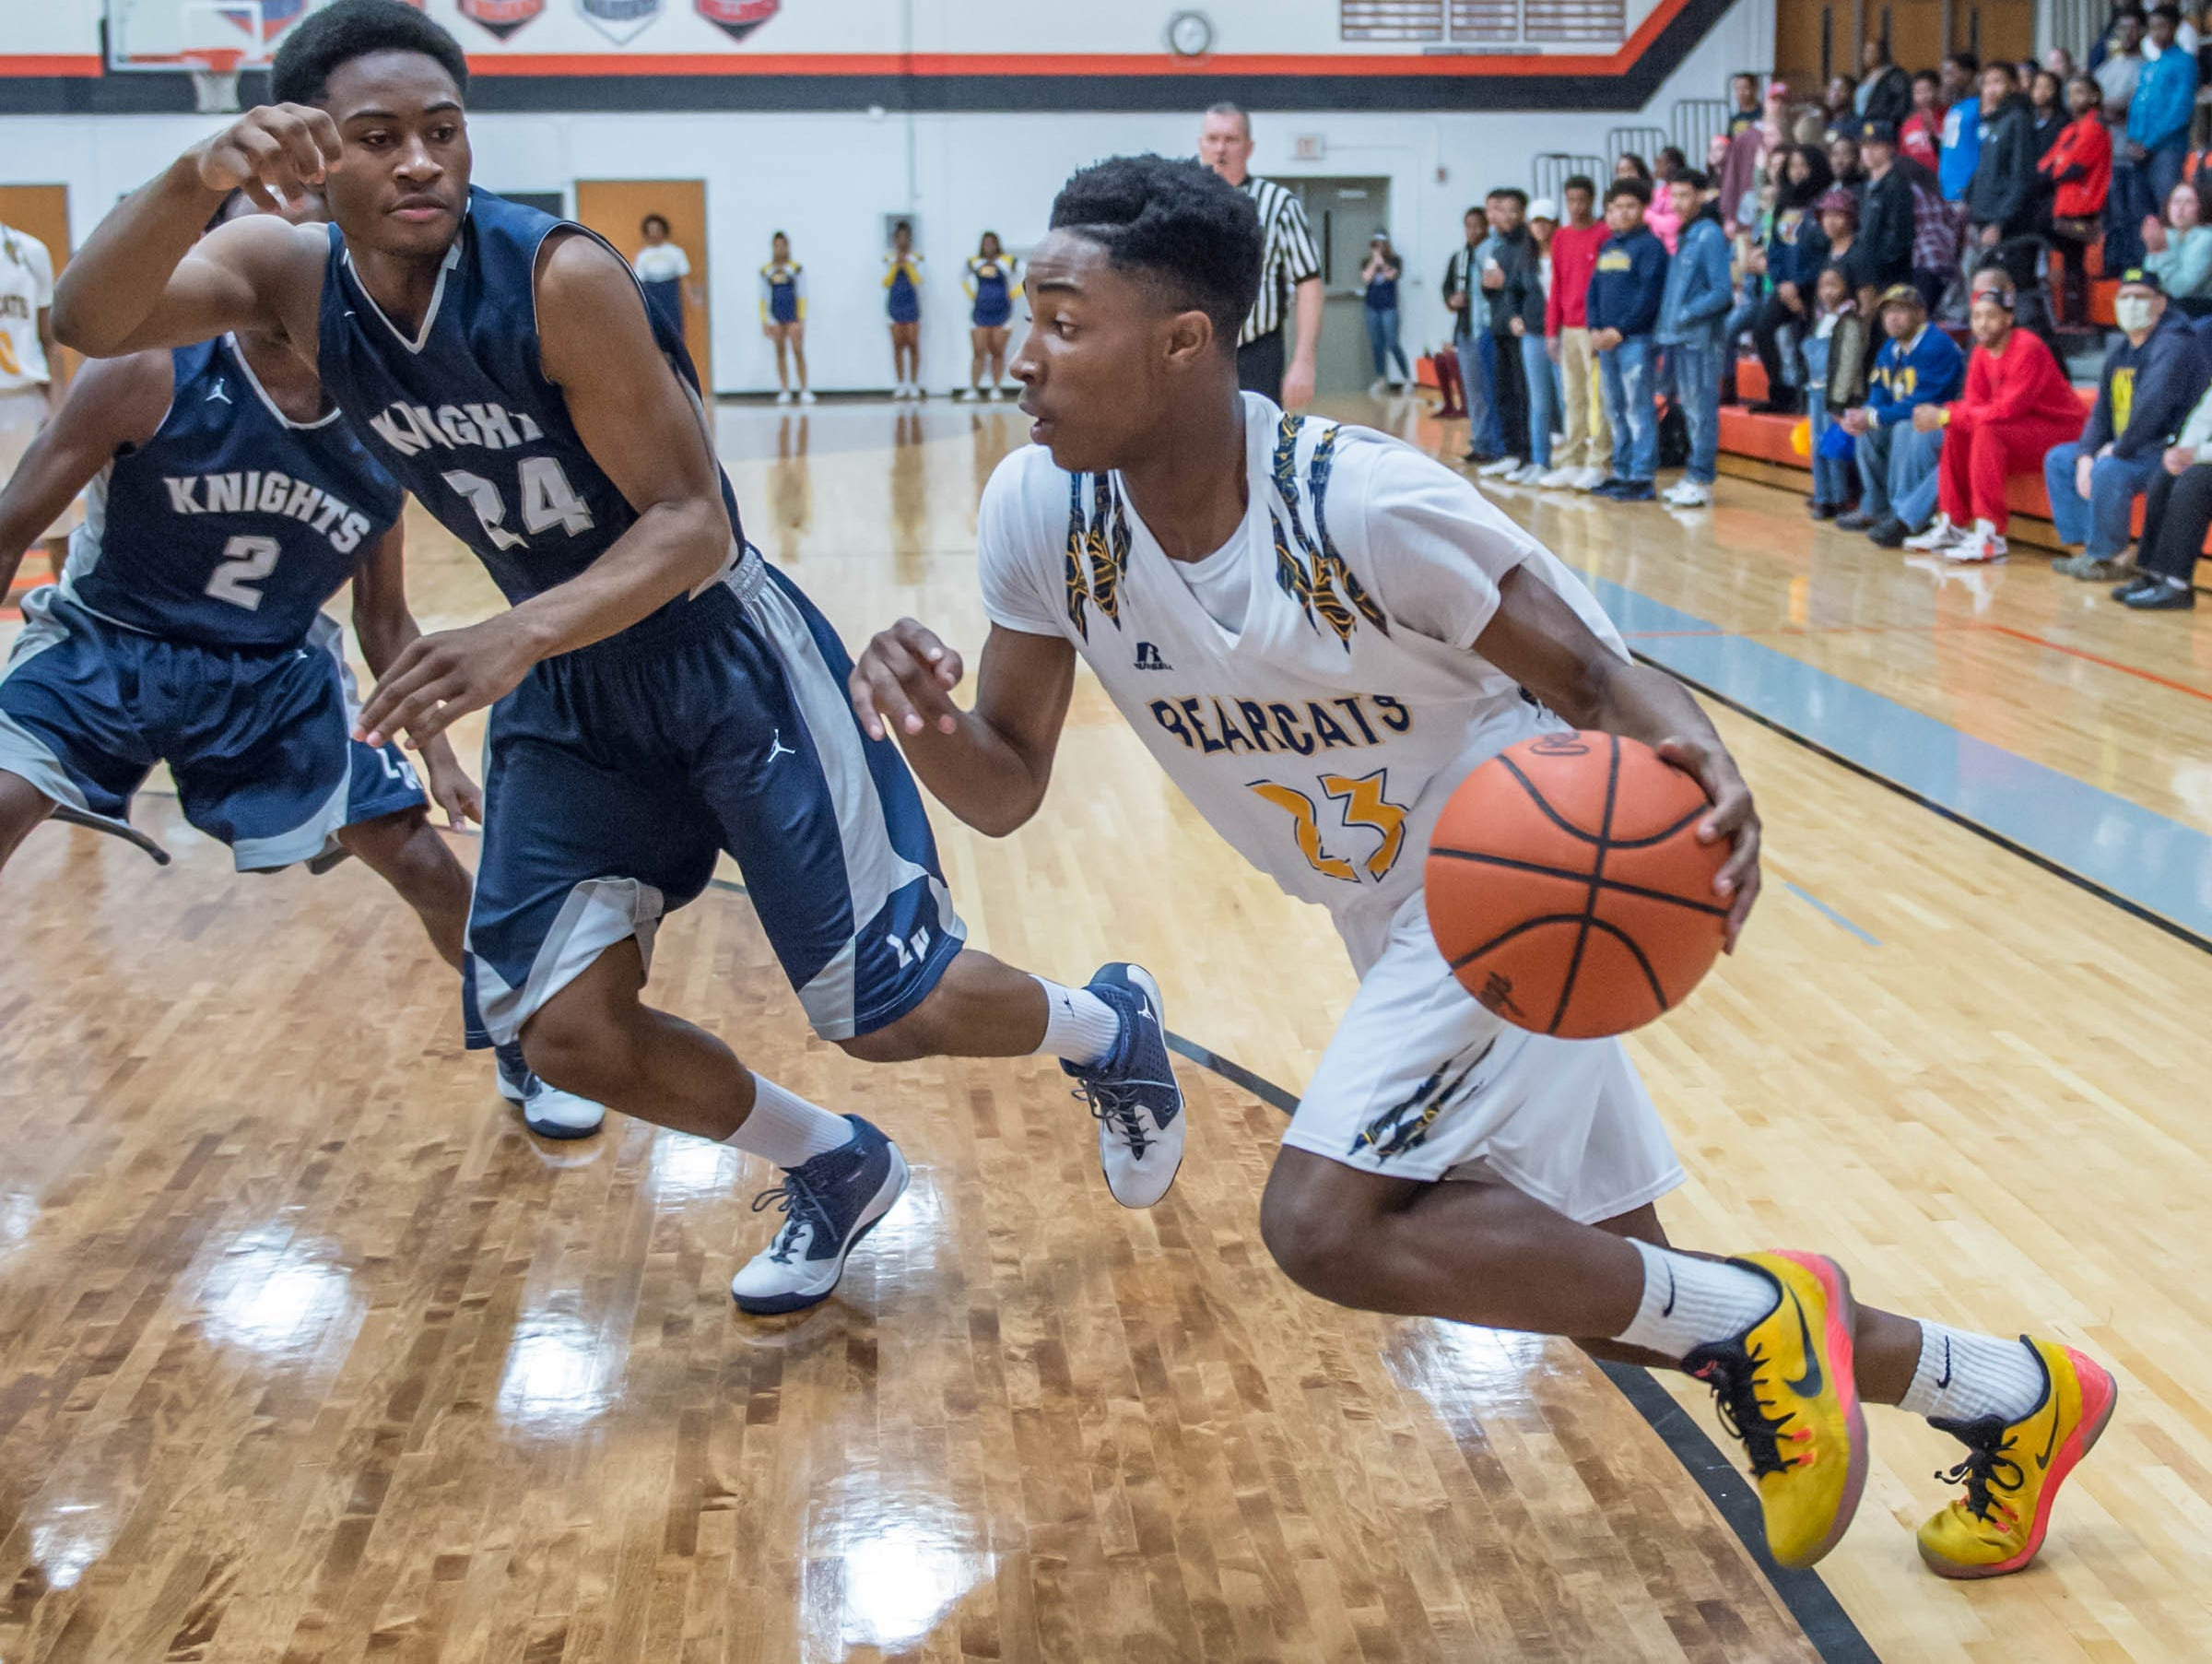 Battle Creek Central's Dontell Hardy (23) drives to the hoop against Loy Norrix Friday night.